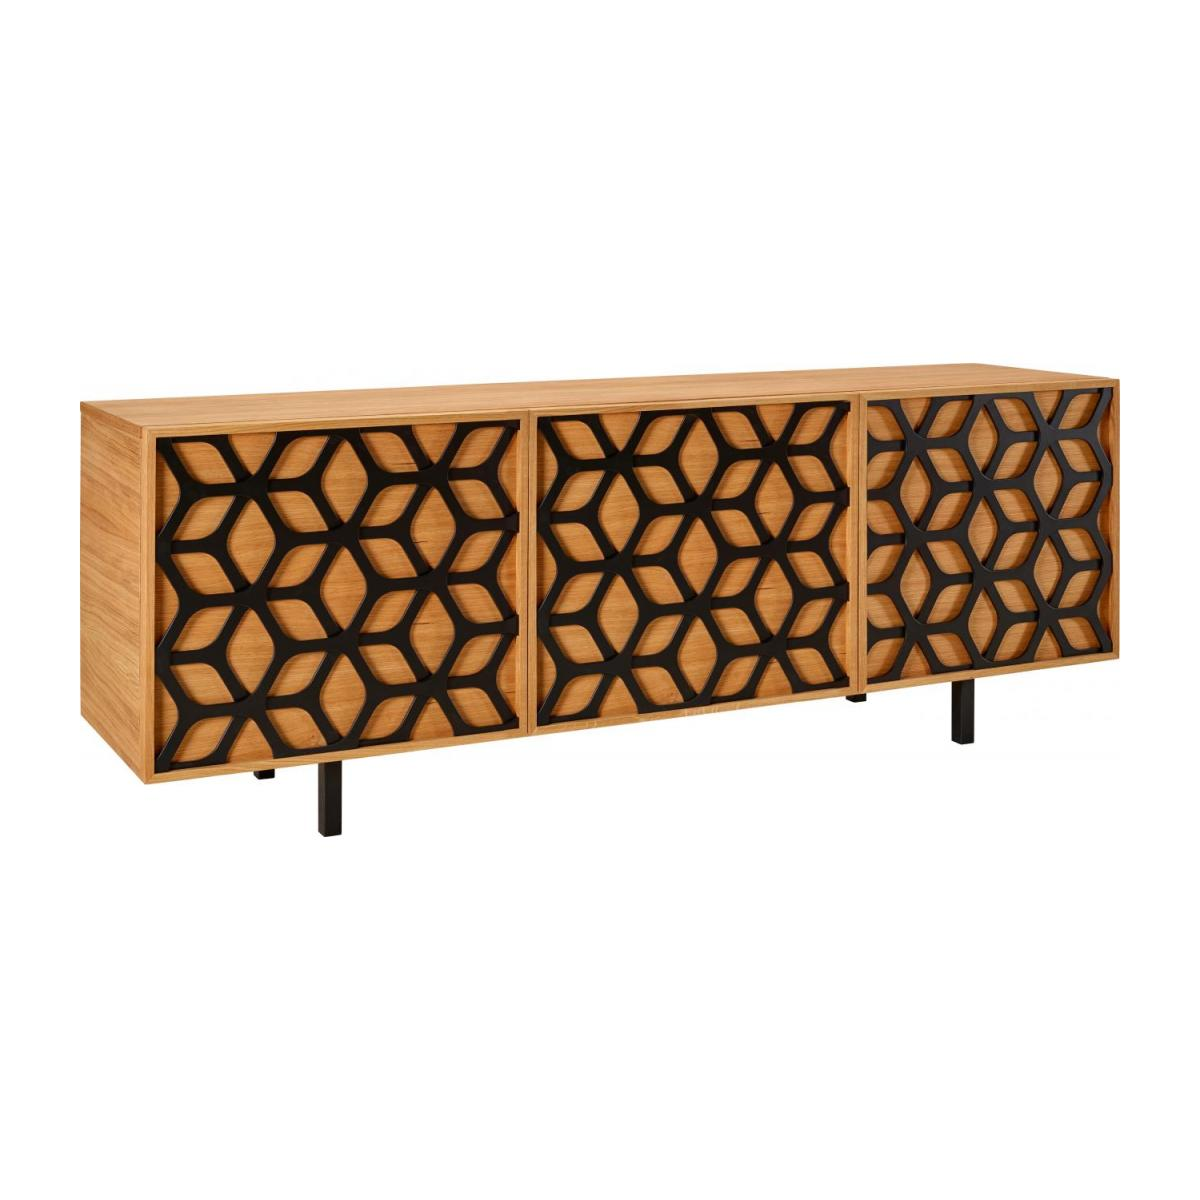 Buffet motif nid d'abeille - Chêne - Design by Habitat Design Studio n°1